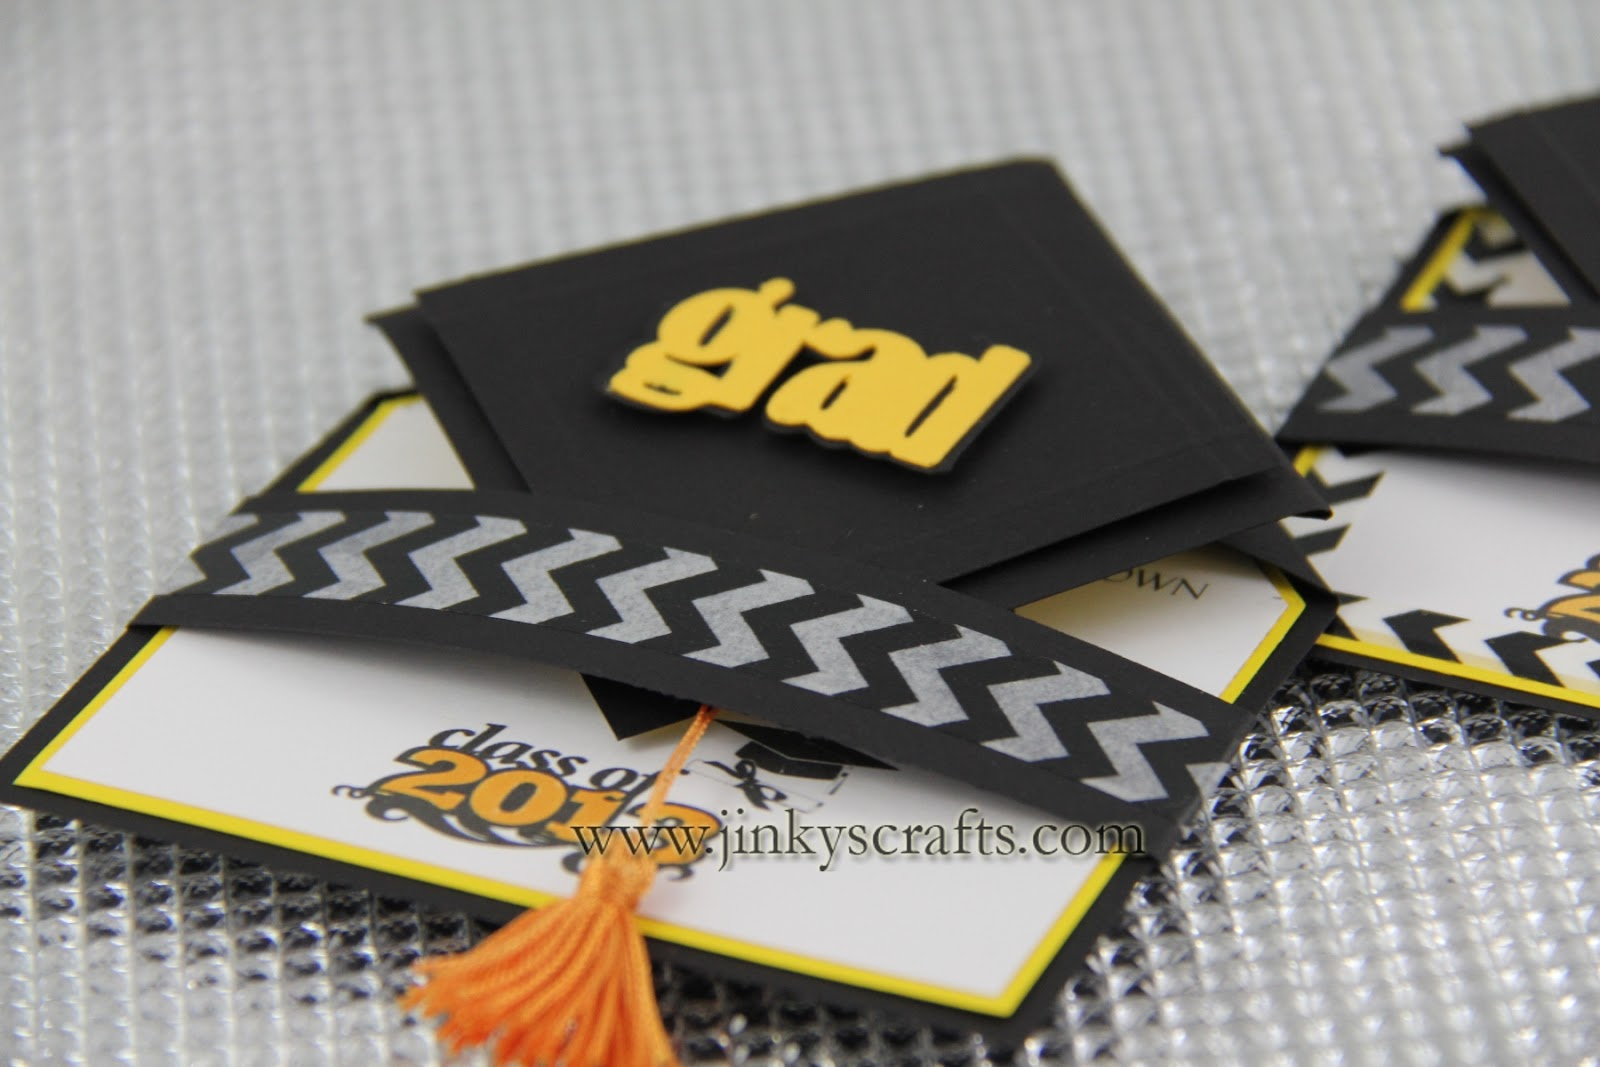 3D Graduation Cap Pop-Up Invitations - Jinkys Crafts